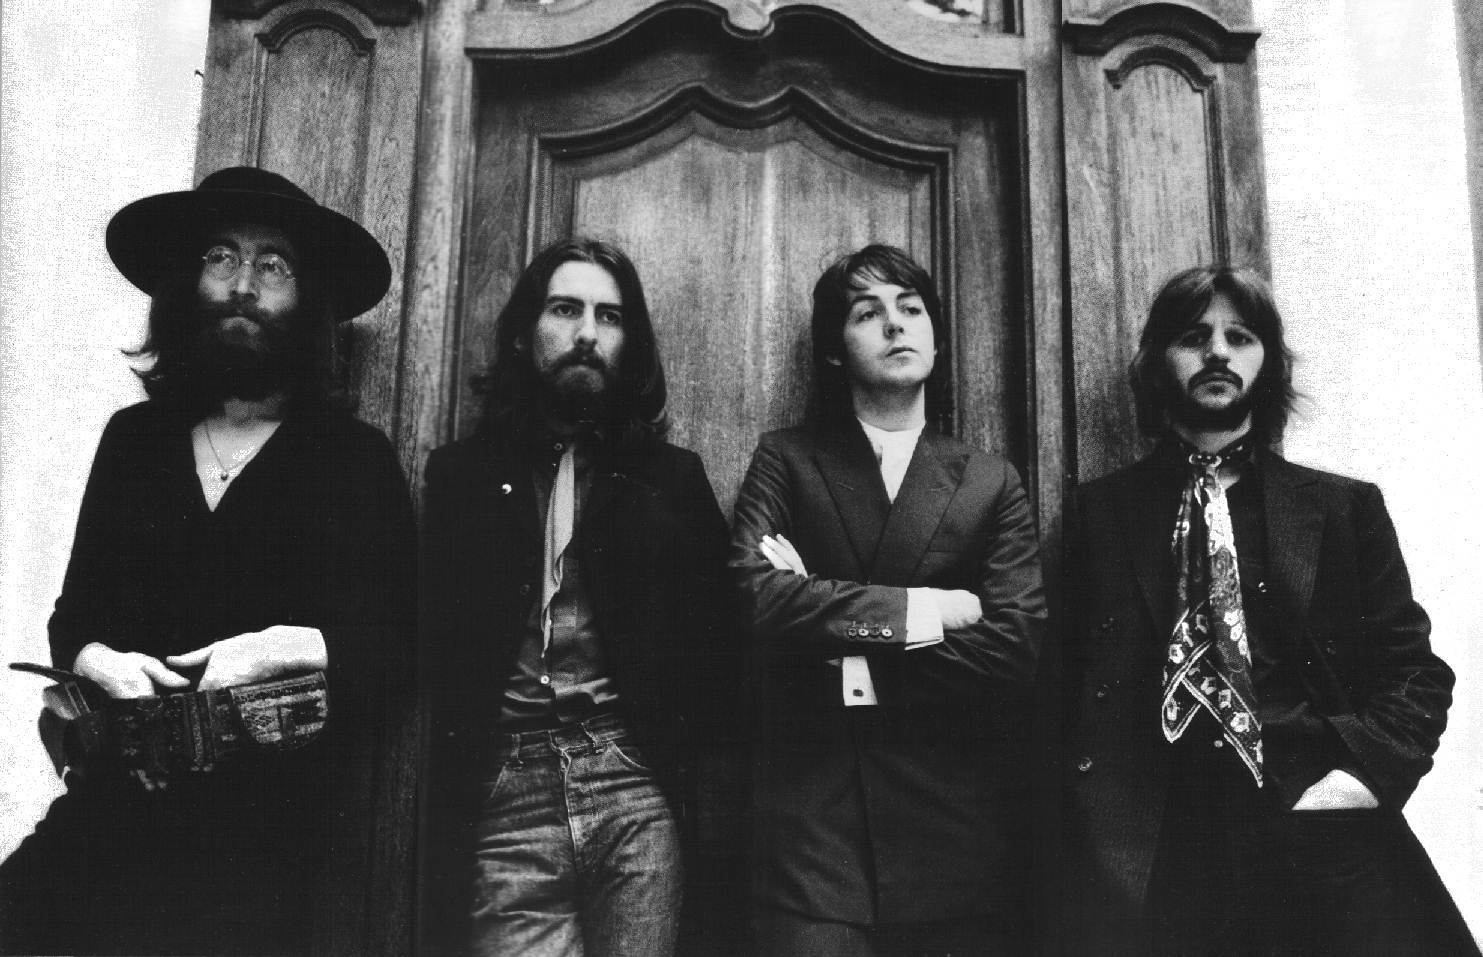 A history of the beatles in the rock era